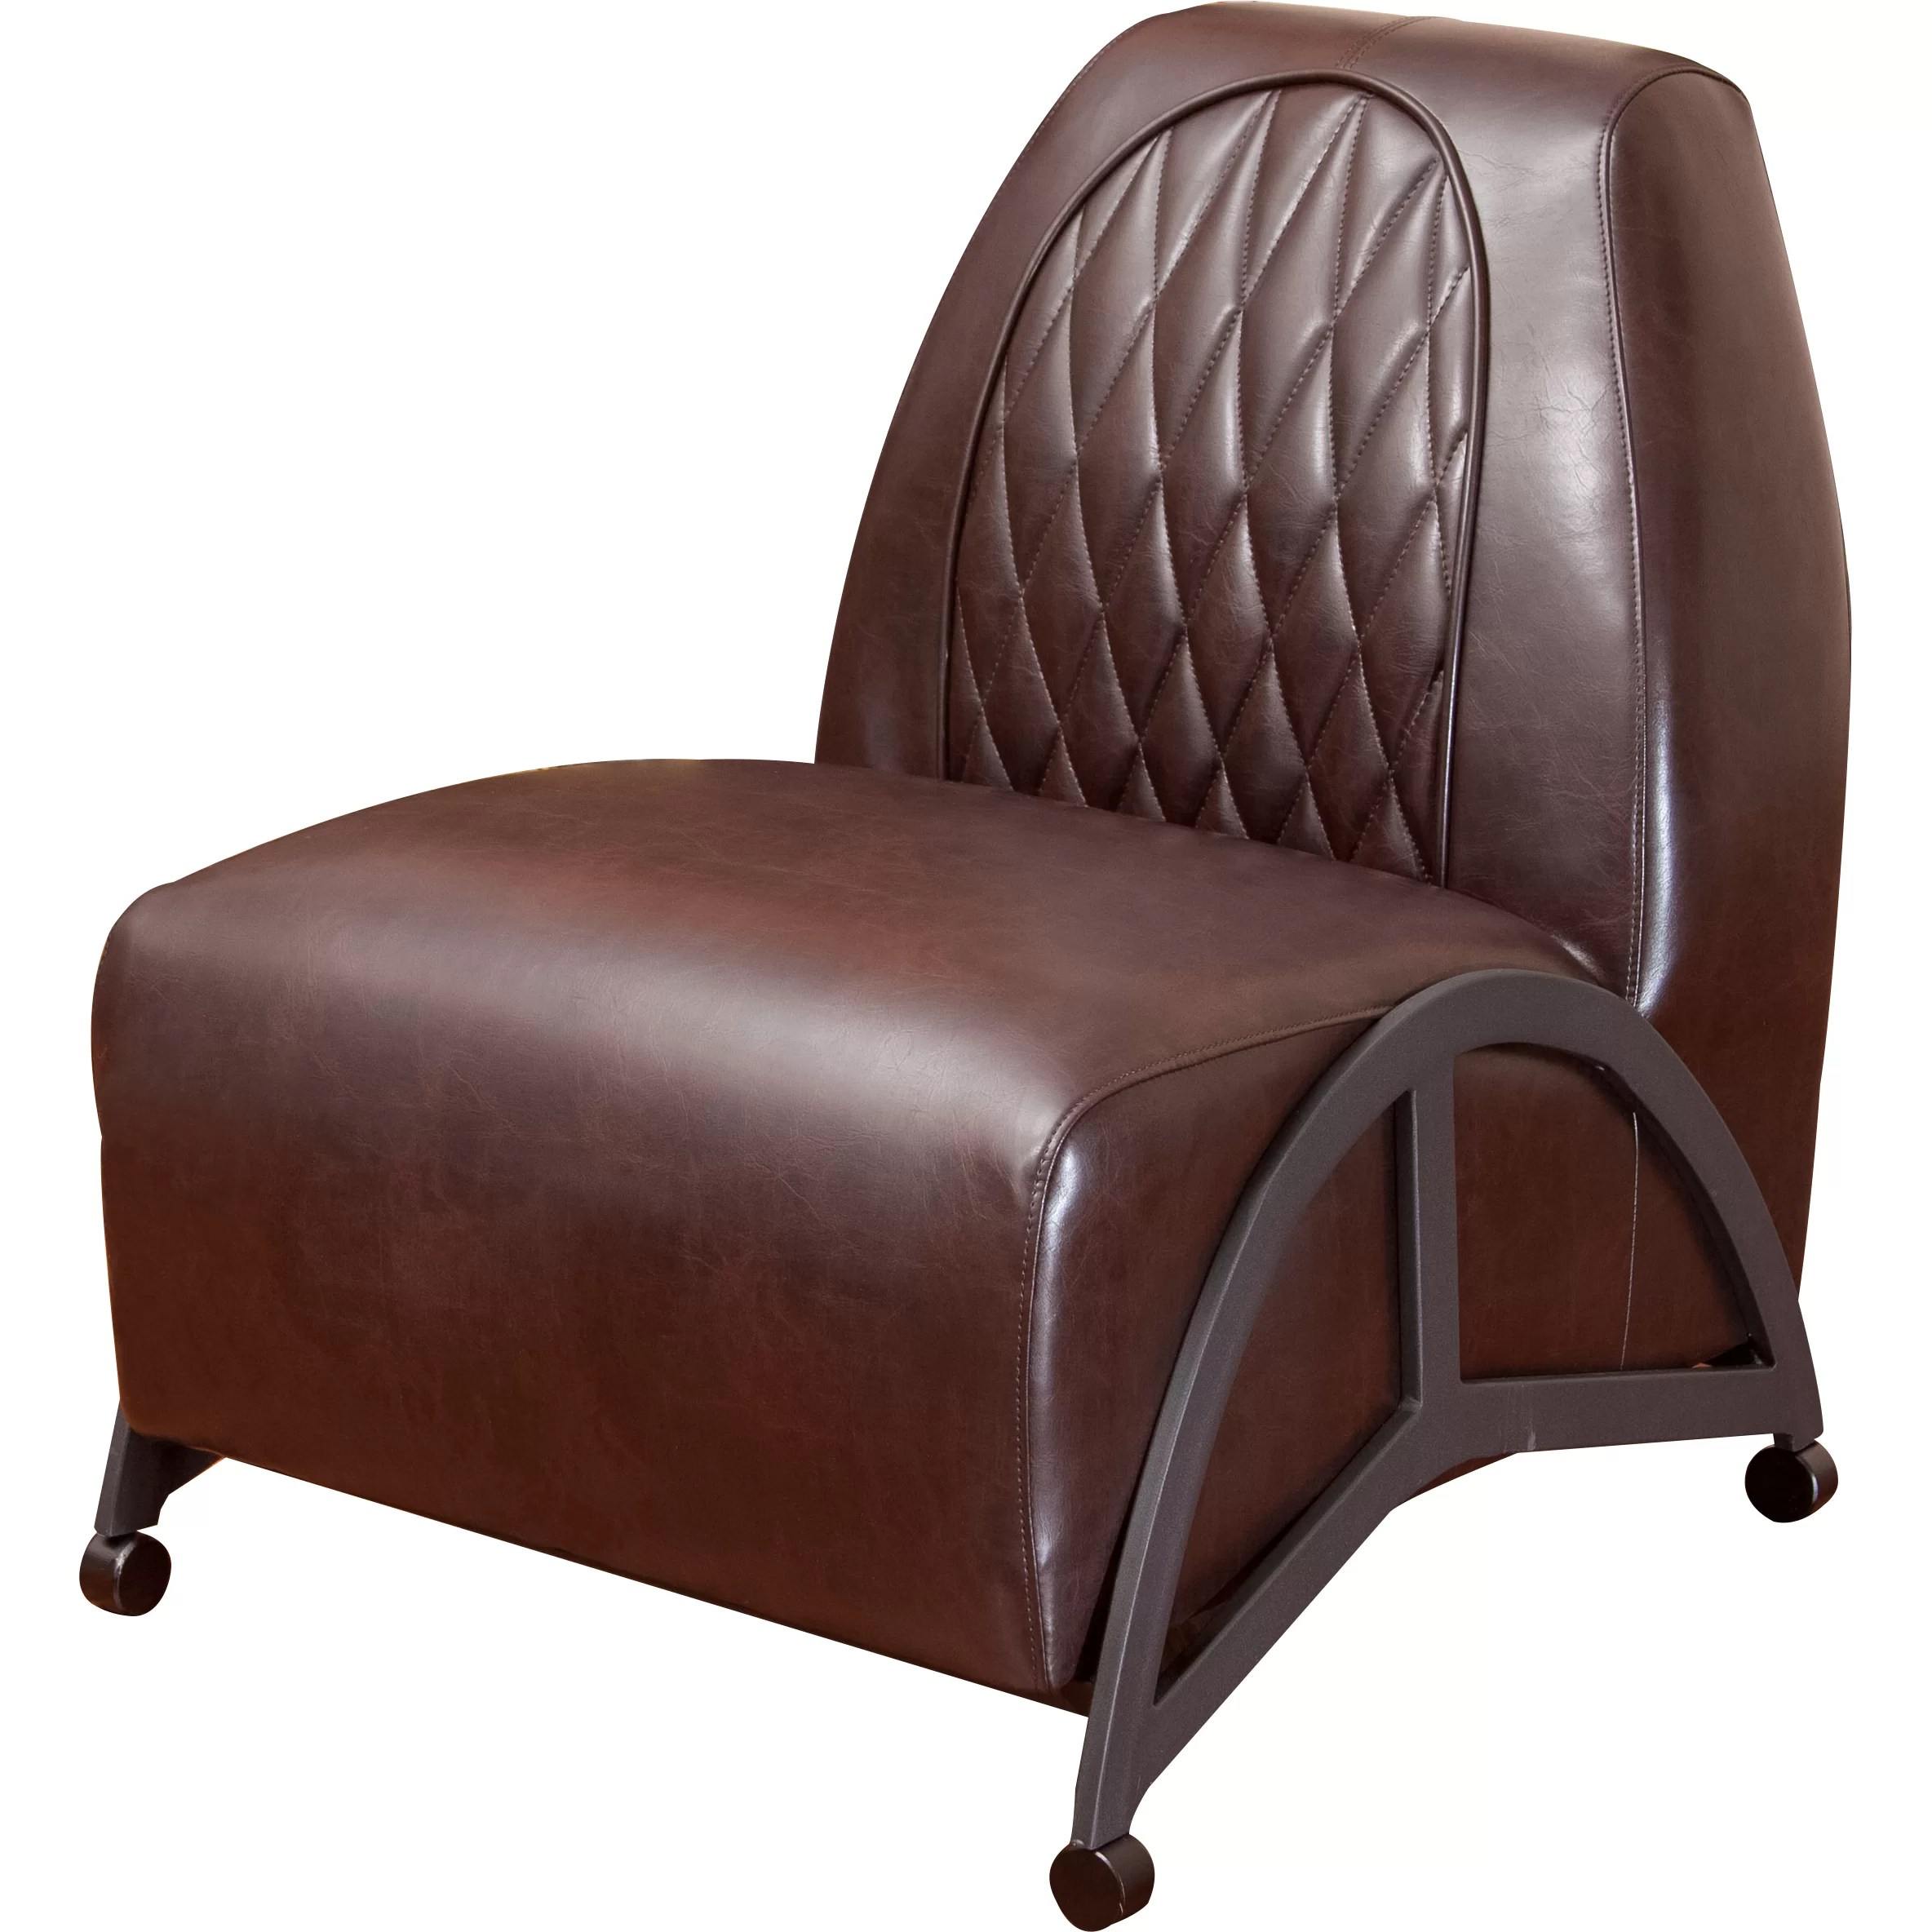 leather slipper chair chocolate allsteel acuity home loft concepts dysert and reviews